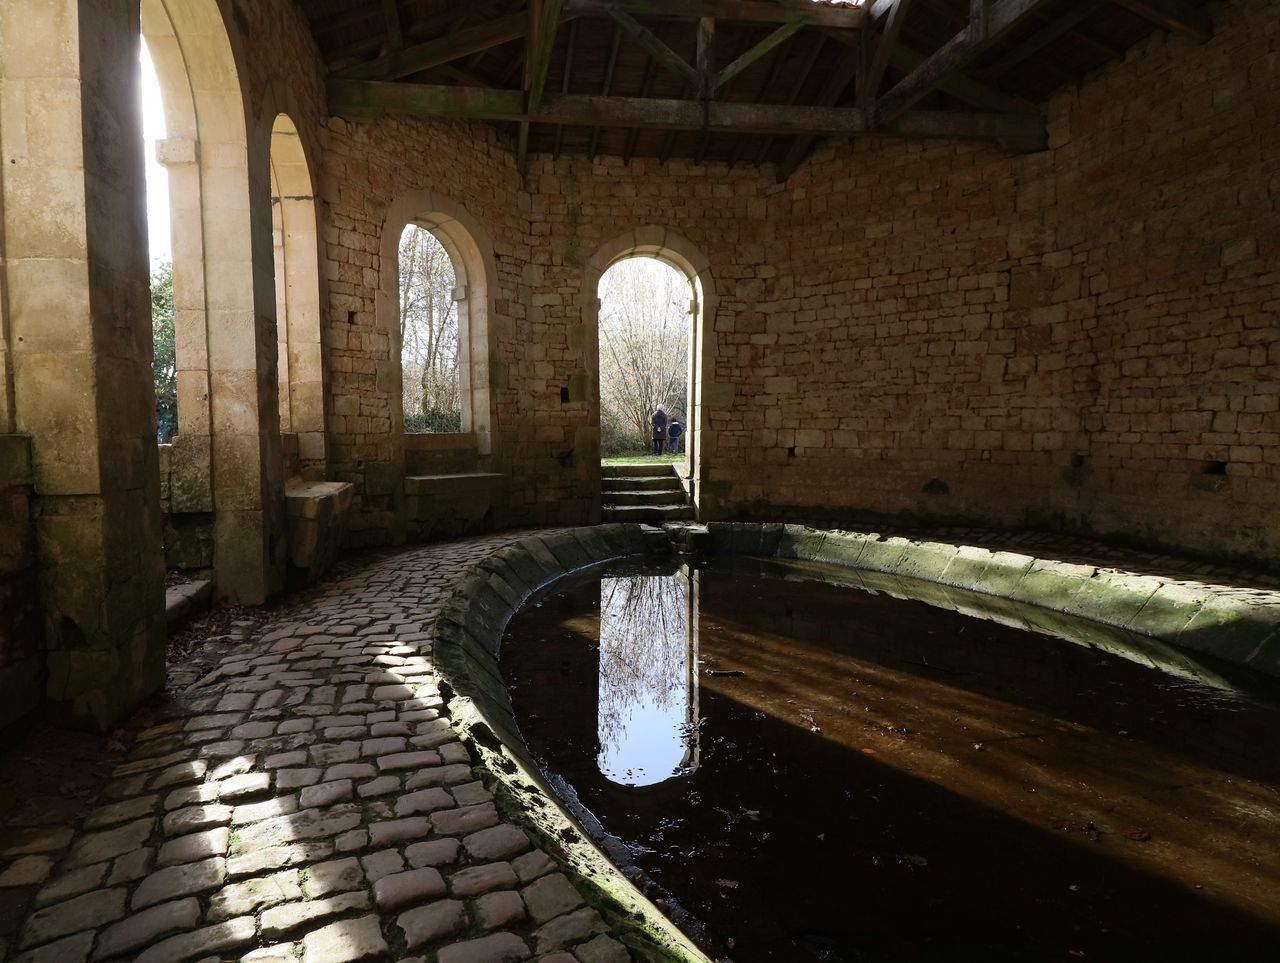 Architecture Day Eye4photography  EyeEm Best Shots Indoors  Lavoir Medieval Architecture No People Old Buildings Reflection Water